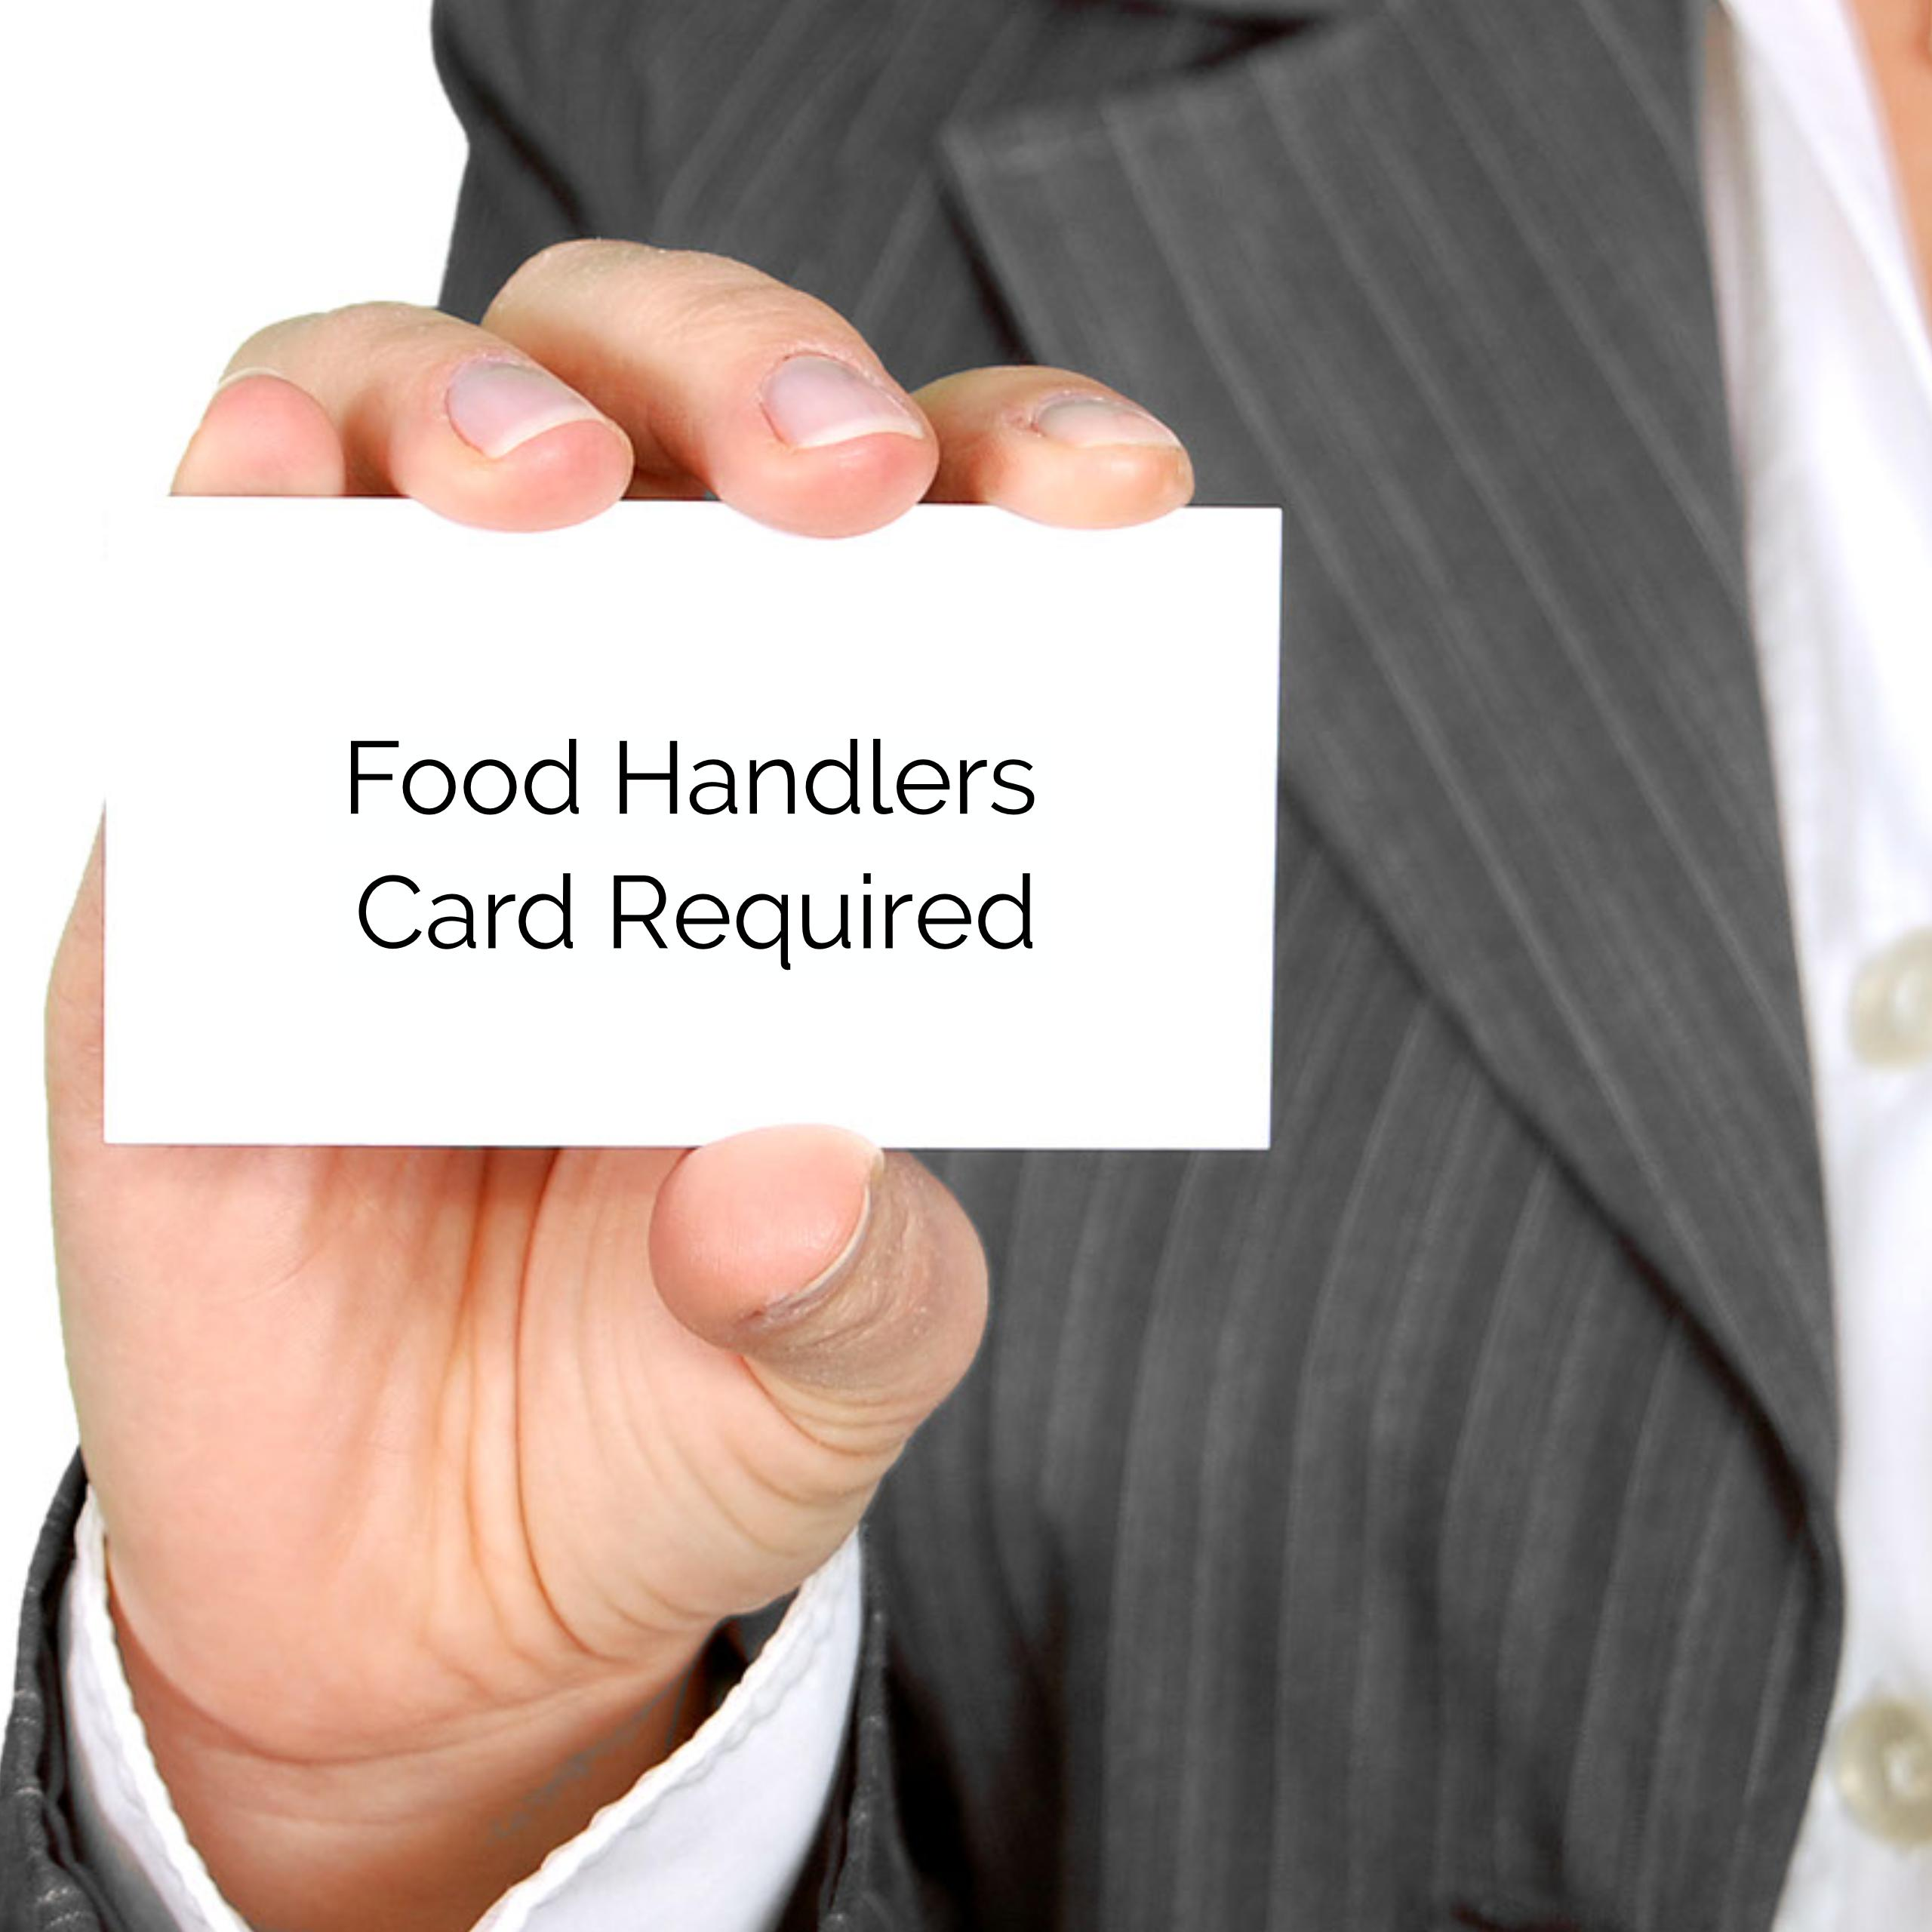 Food Handlers Card Required For Festival Food Booths